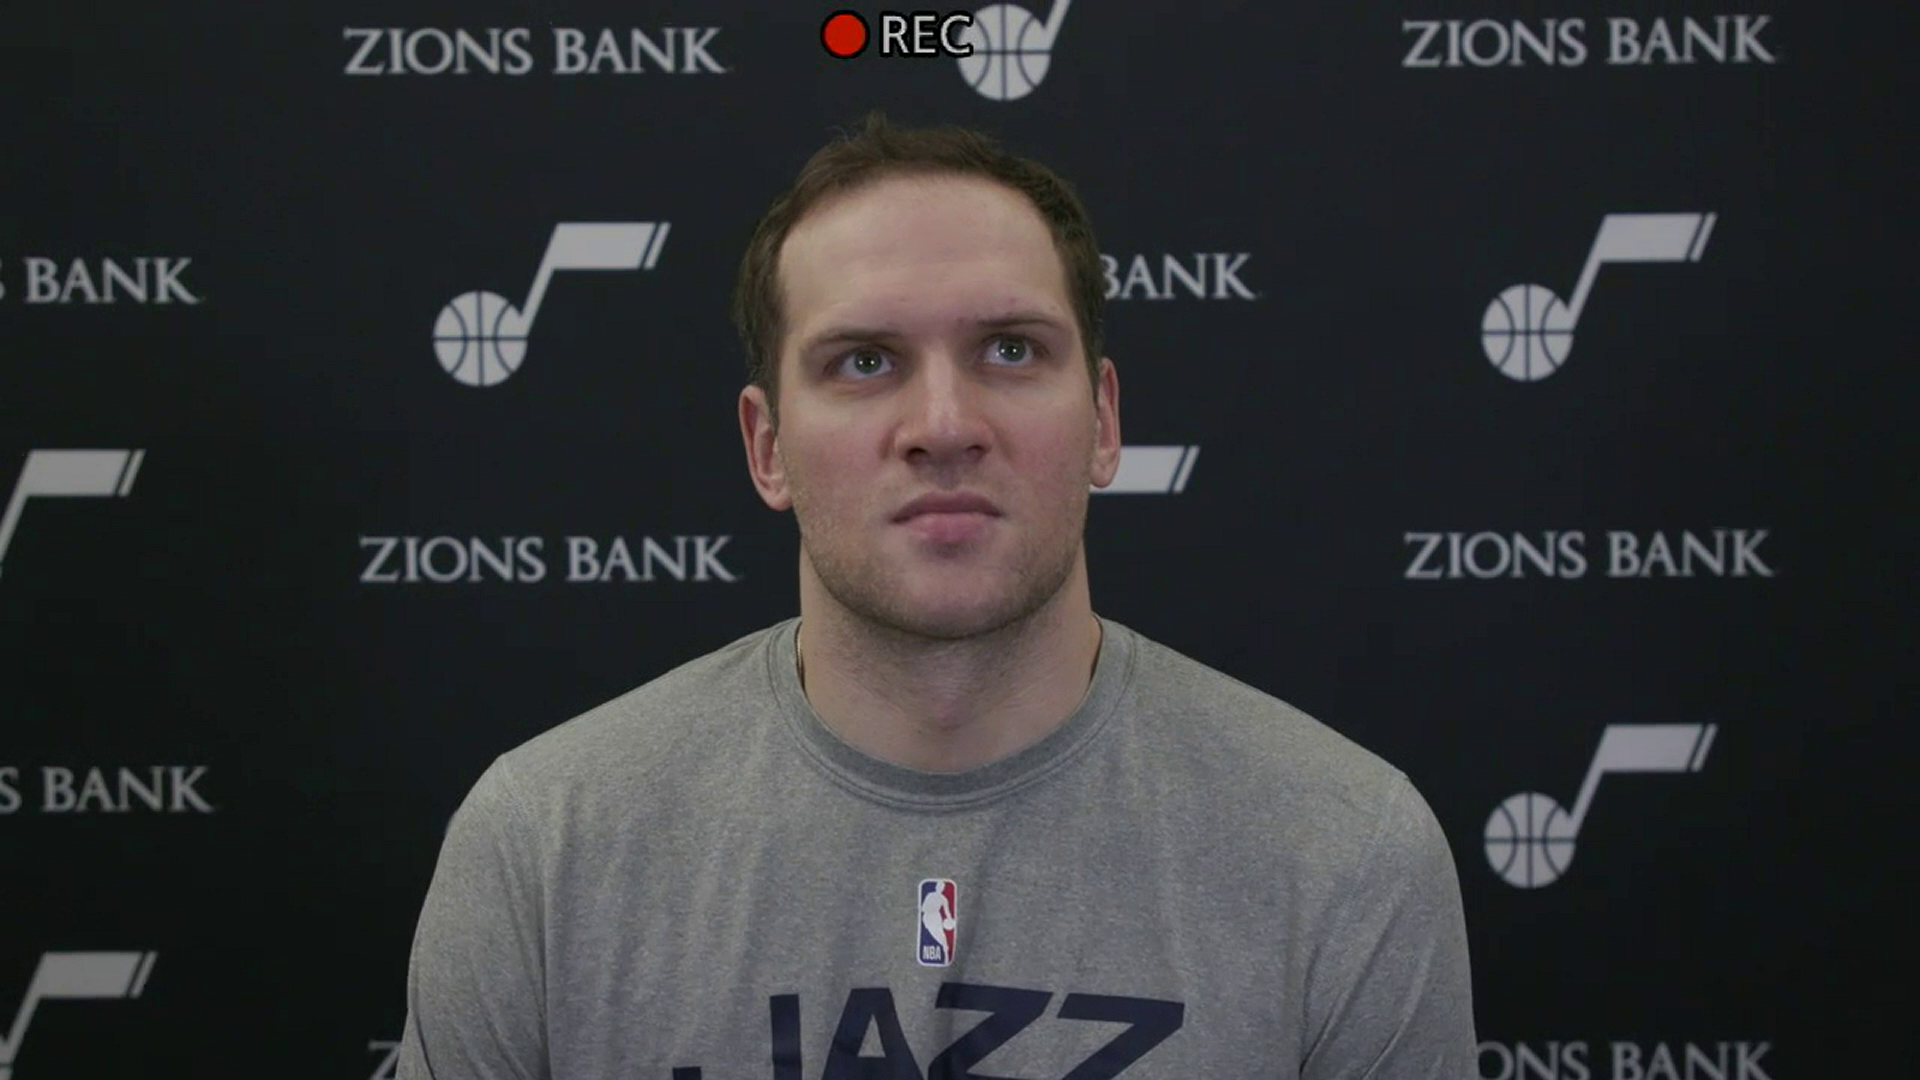 Practice 1.14—Bojan on the challenges of coming back from injury